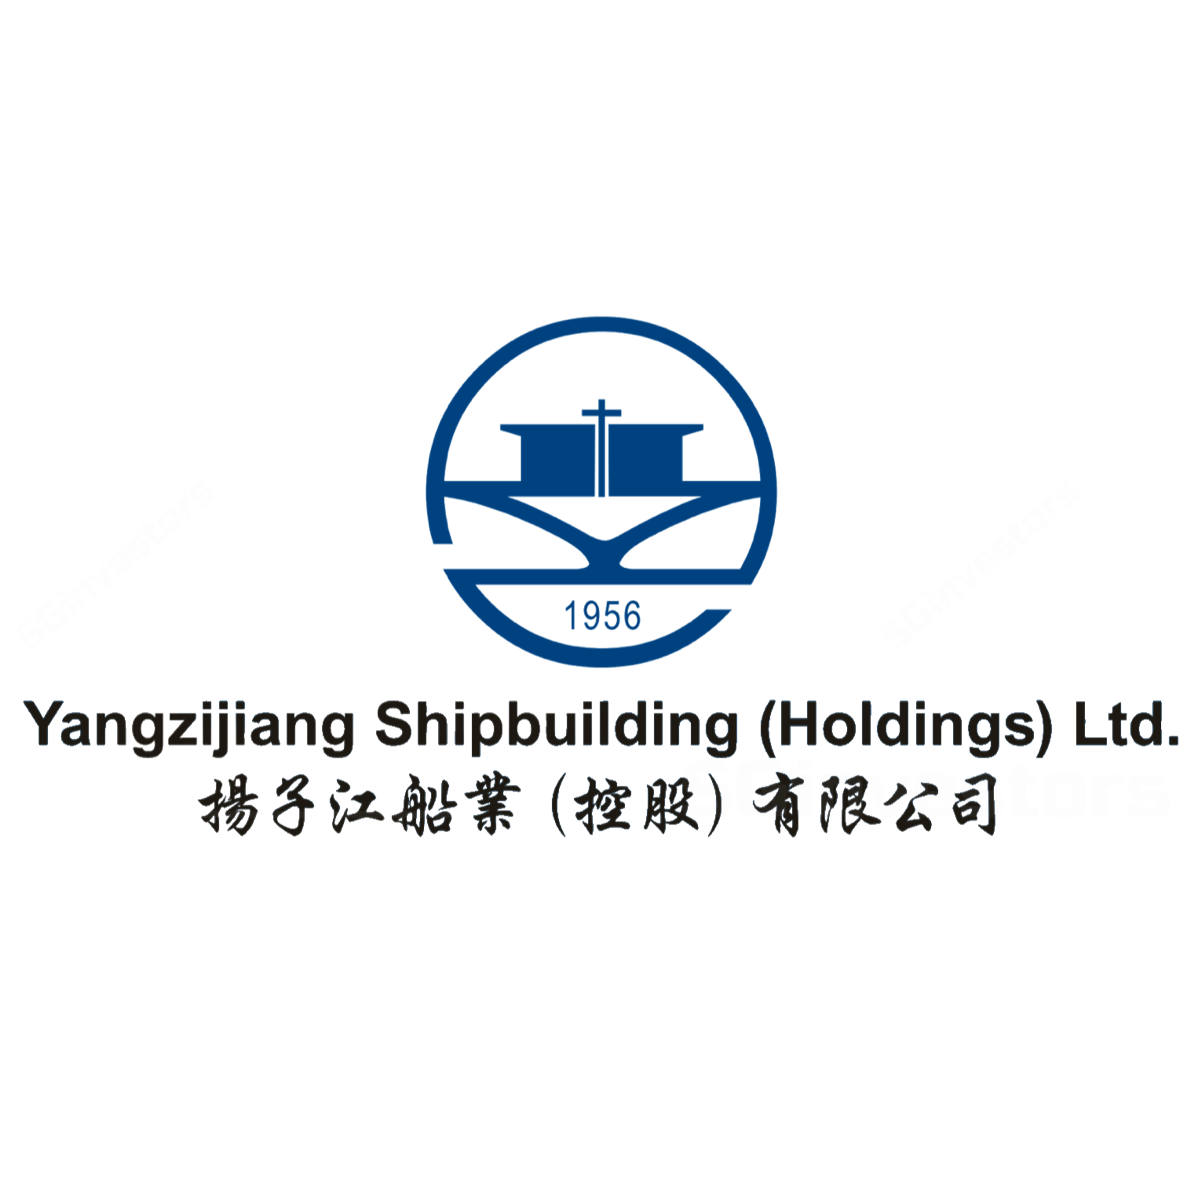 Yangzijiang Shipbuilding - DBS Vickers 2017-08-10: Riding On Shipbuilding Upturn